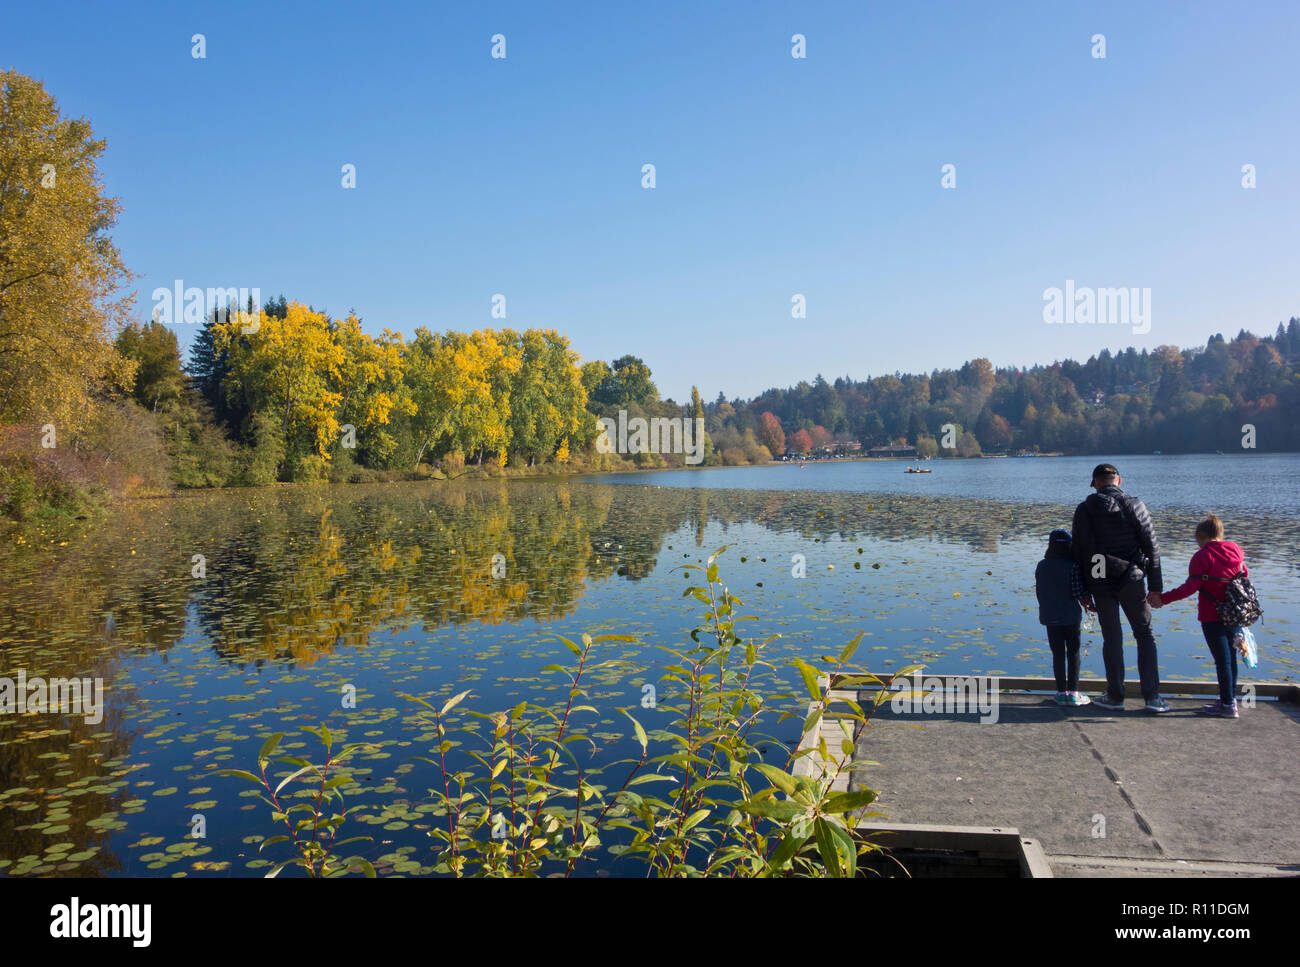 Family of three at Deer Lake park in Burnaby, British Columbia, Canada. Stock Photo